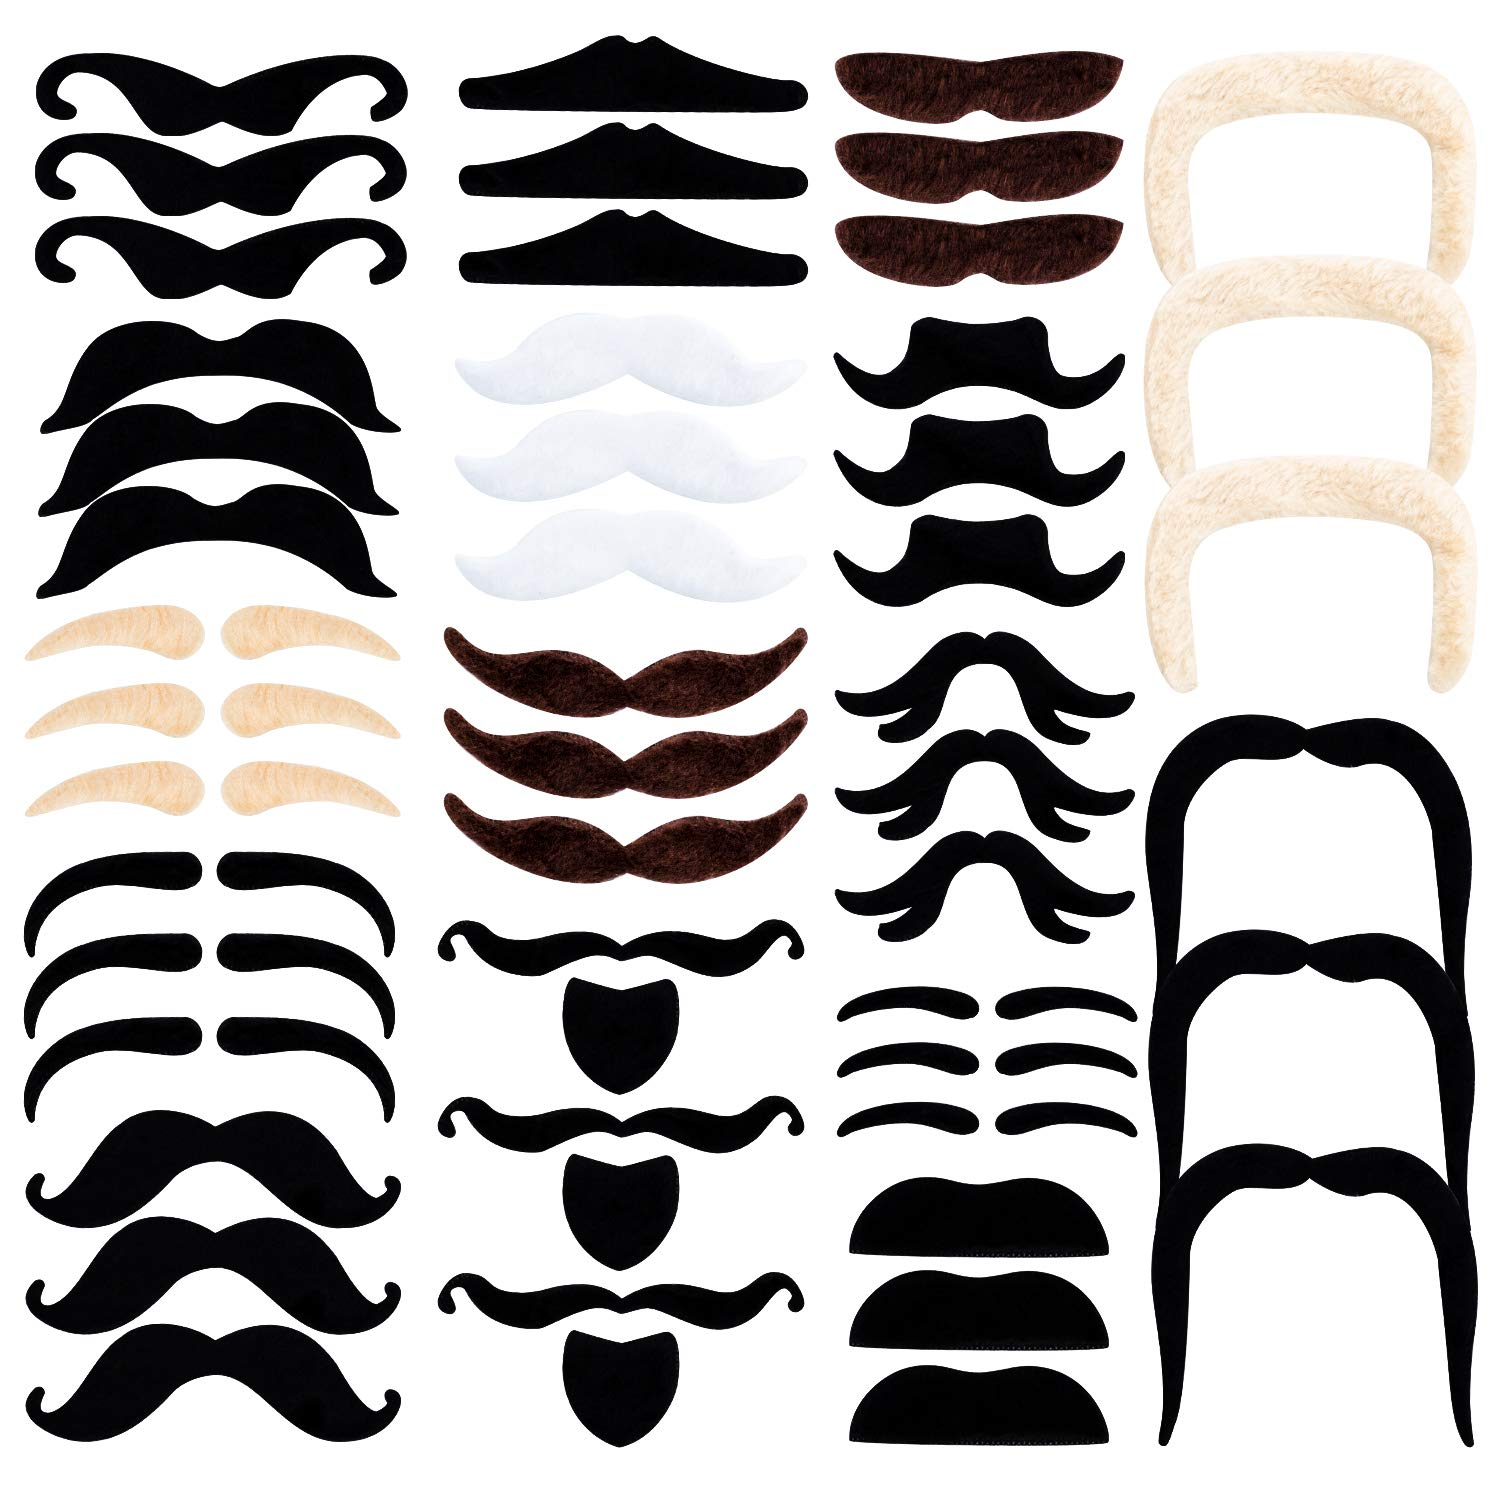 Whaline 48 Pack Novelty Fake Mustaches Self Adhesive Halloween Mustache Set for Masquerade Party Favor, Costume and Performance